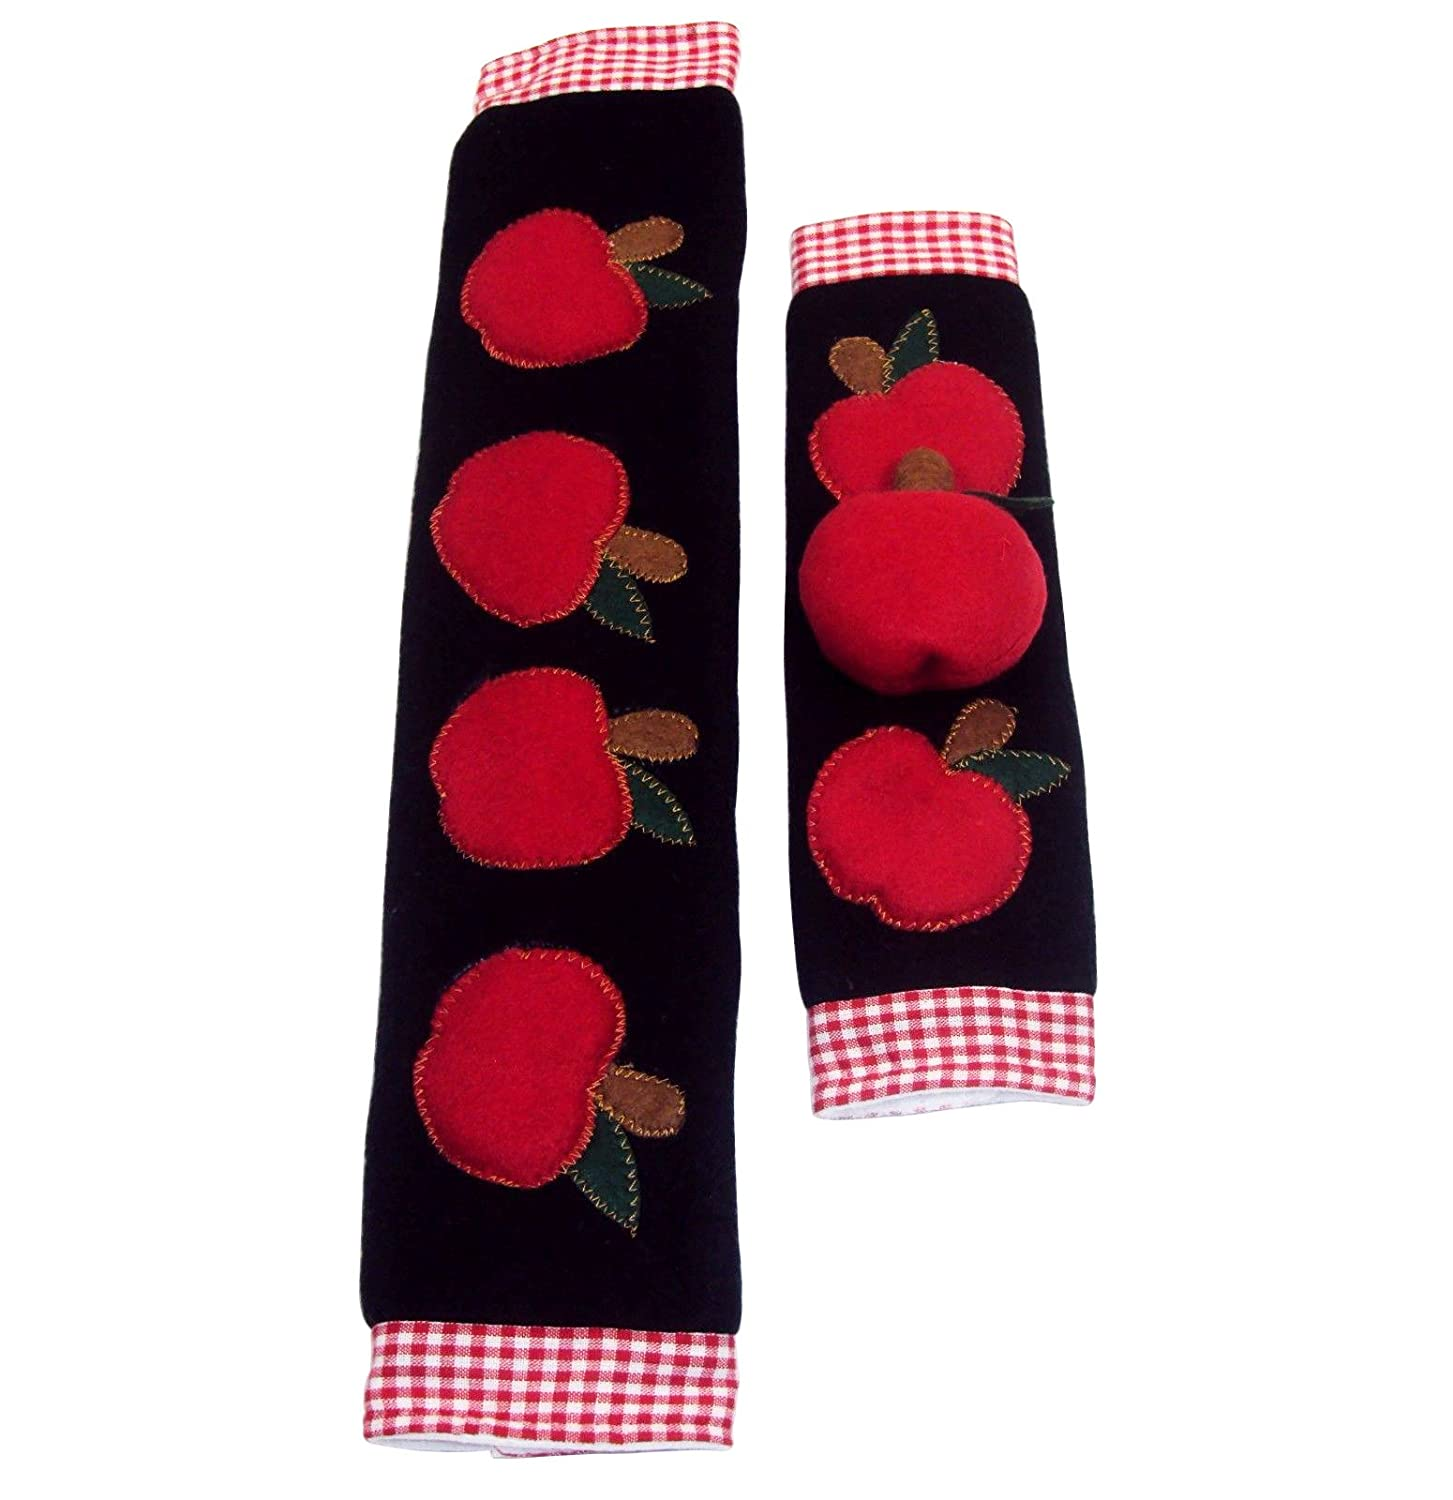 Amazon Kitchen Appliance Handle Covers with Apple Design